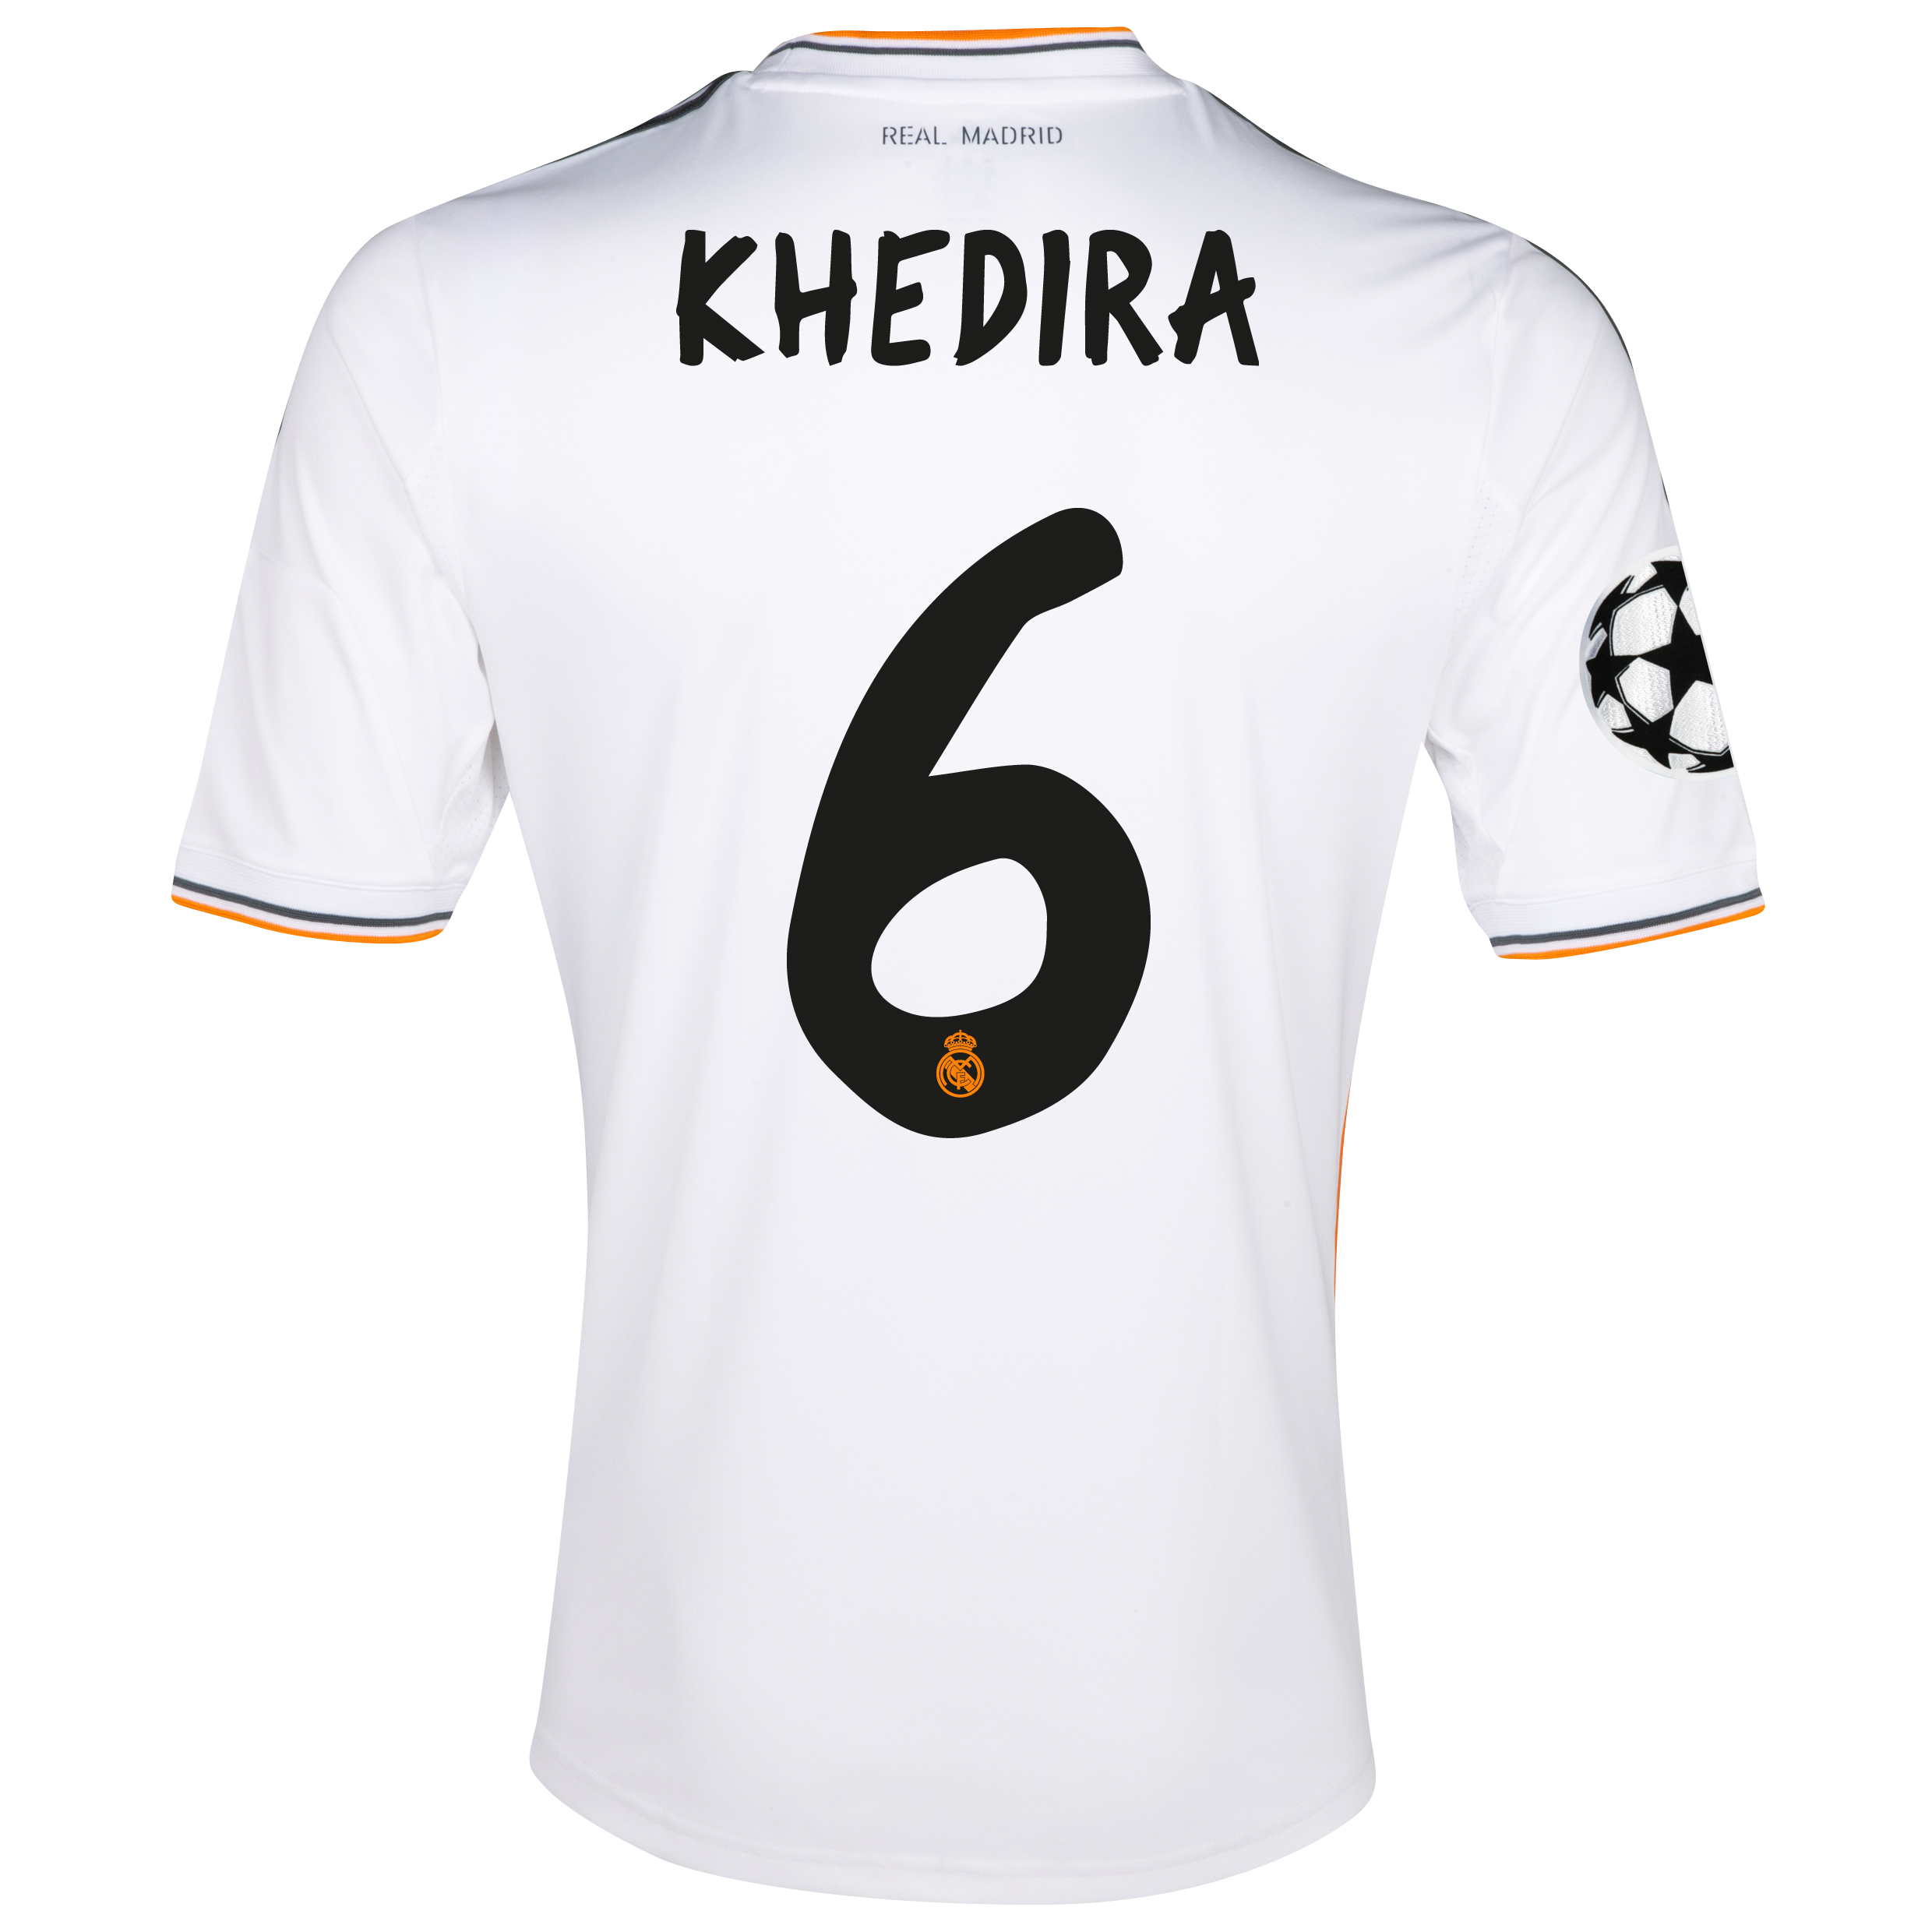 Real Madrid UEFA Champions League Home Shirt 2013/14 with Khedira 6 printing